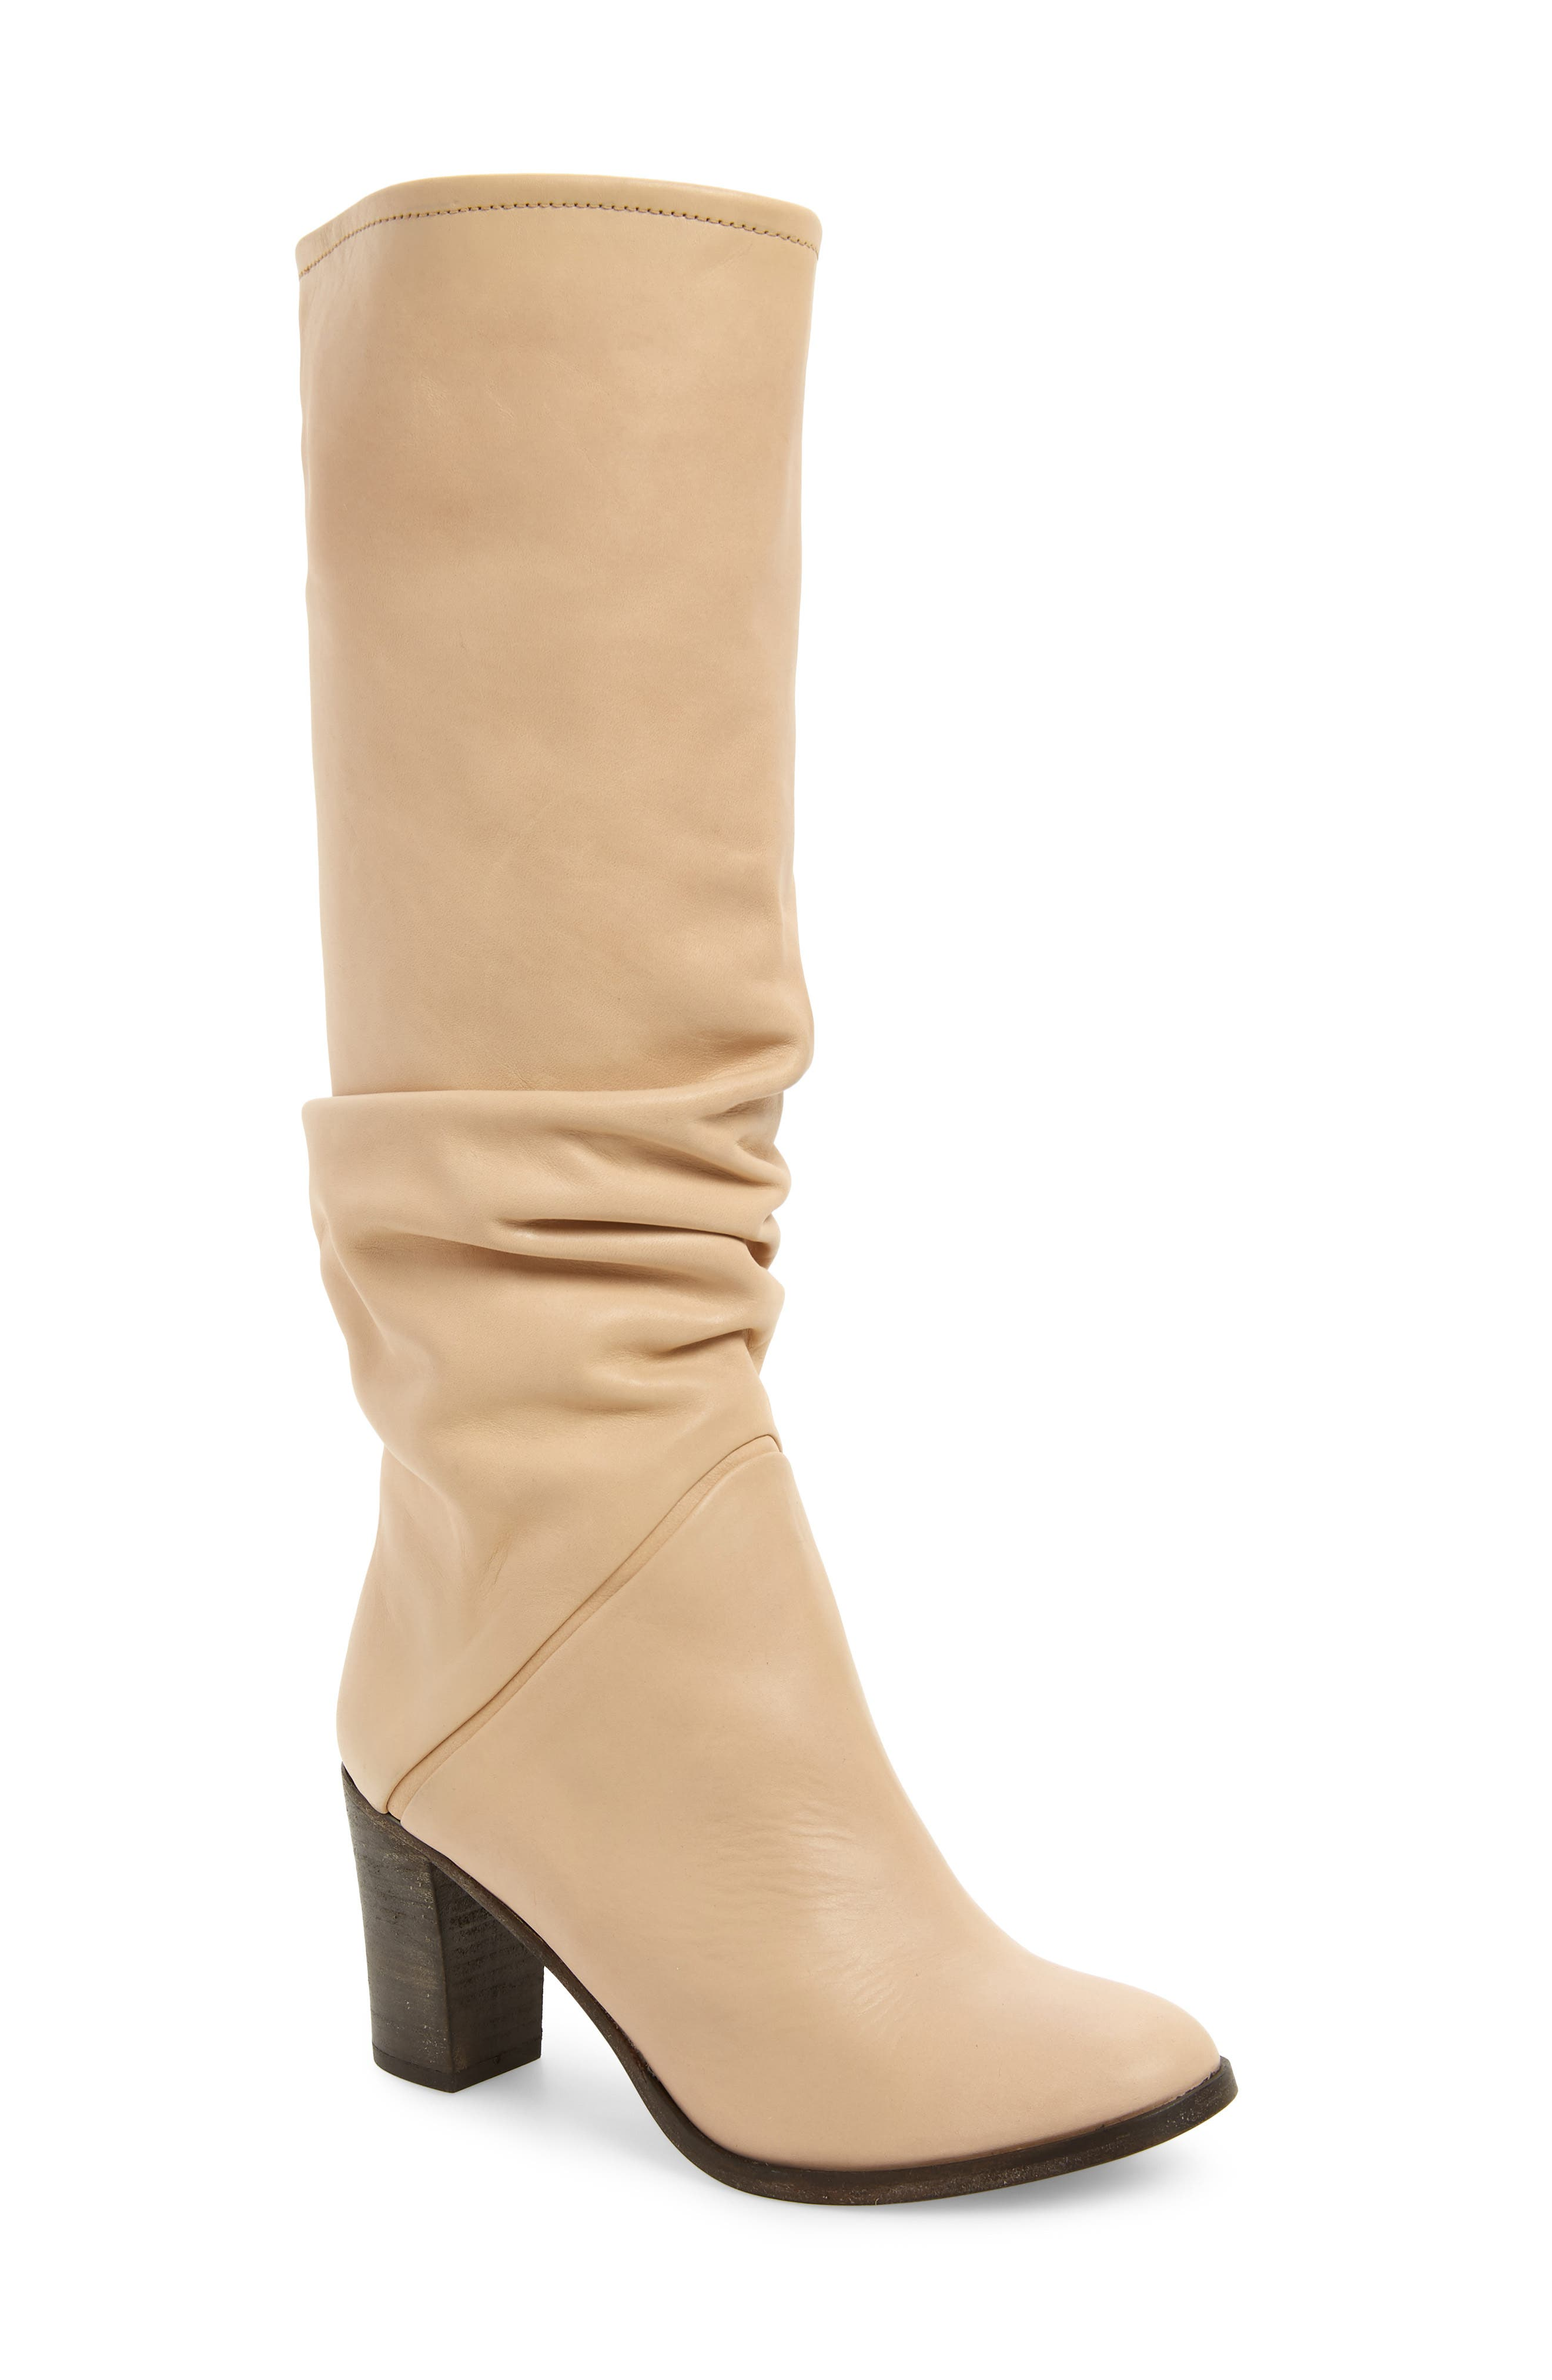 Tennison Knee High Boot,                             Main thumbnail 1, color,                             BEIGE LEATHER